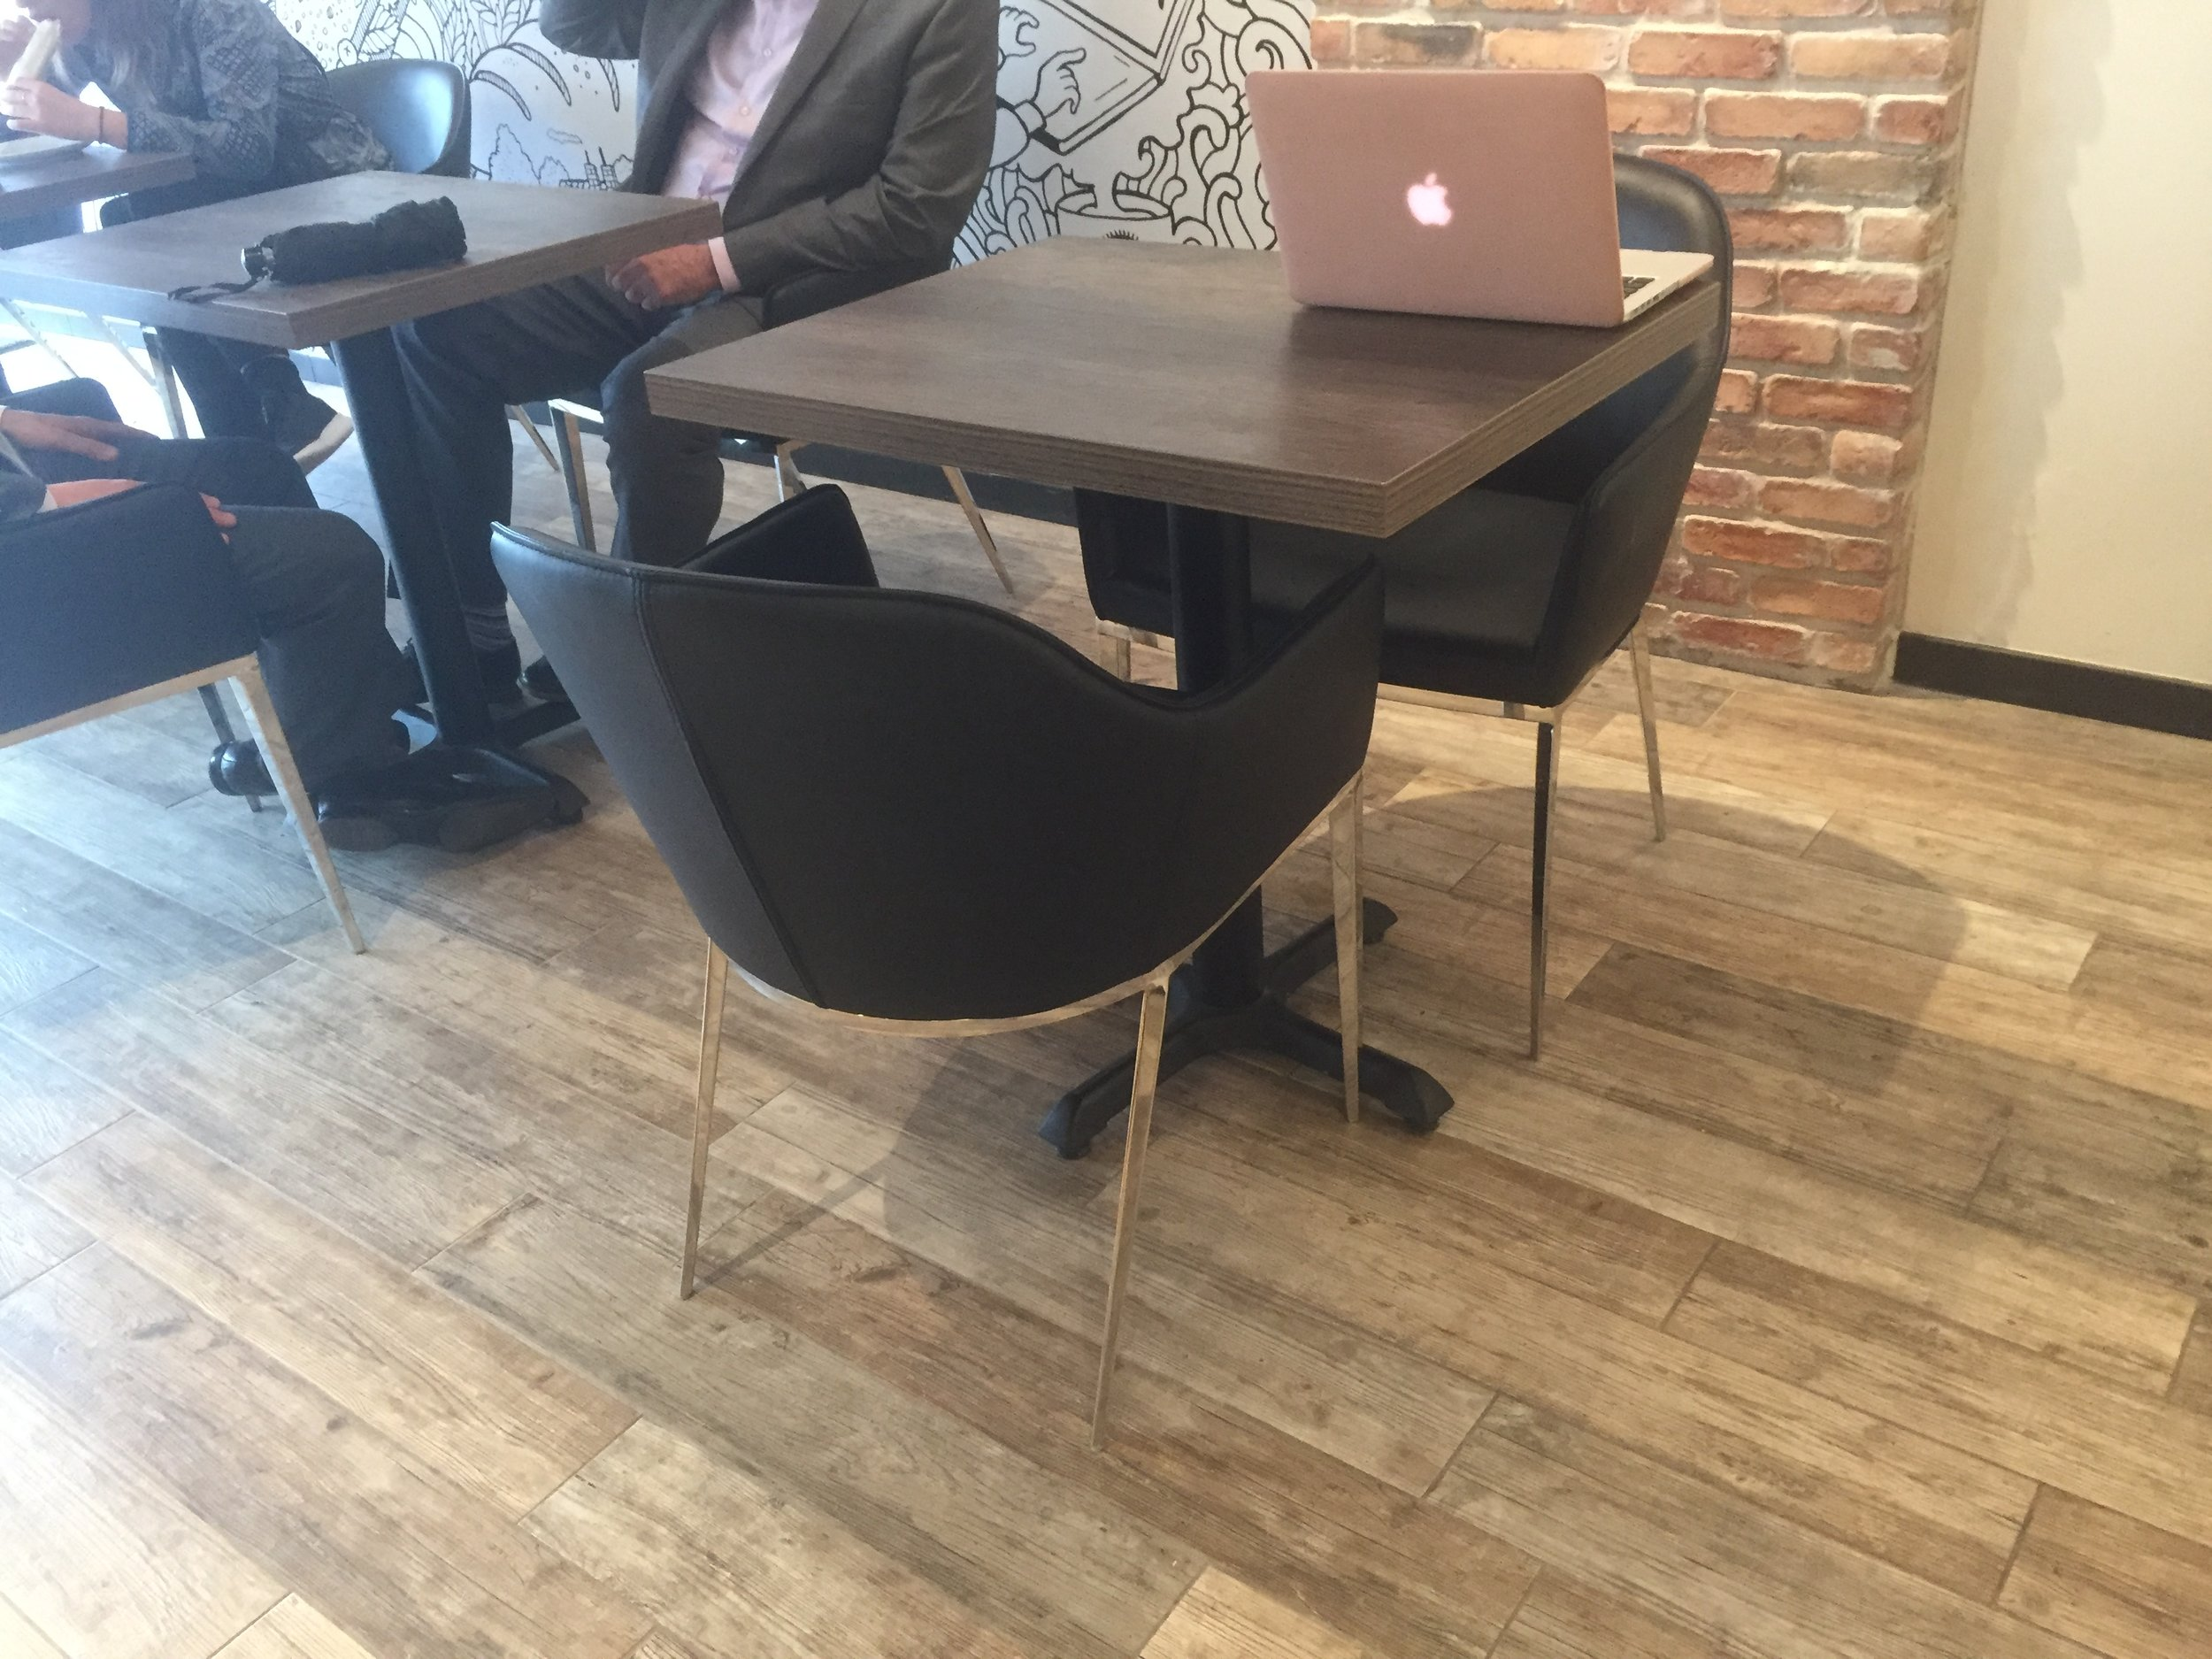 Picture of standard height table with removable chairs at Oliva